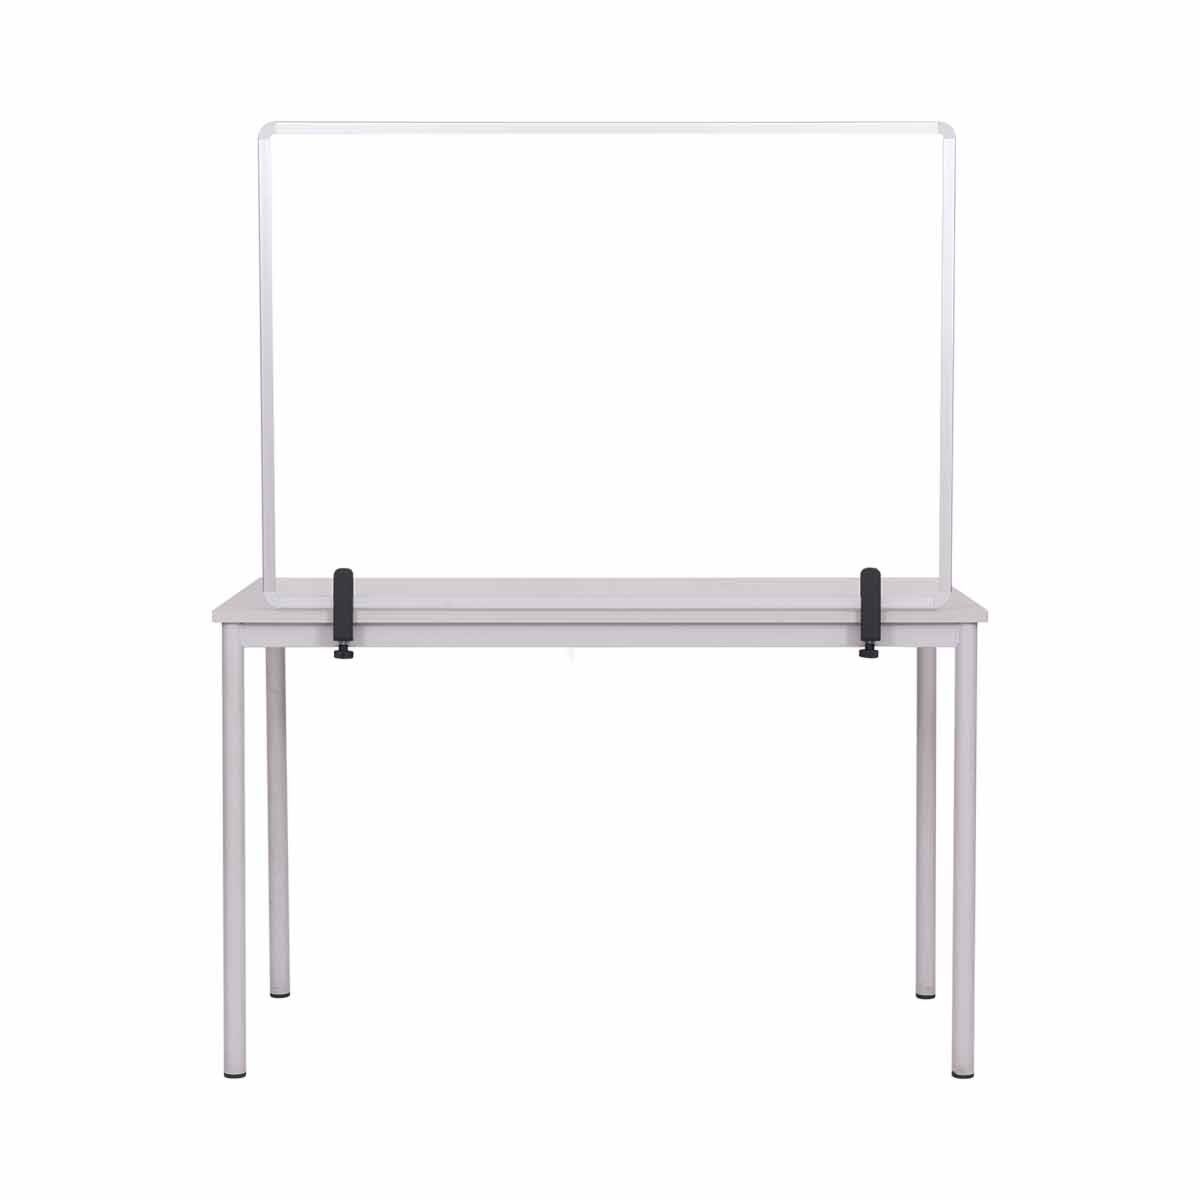 Bi-Office Protector Desktop Glass Board with Aluminium Frame and Clamps 120x90 cm